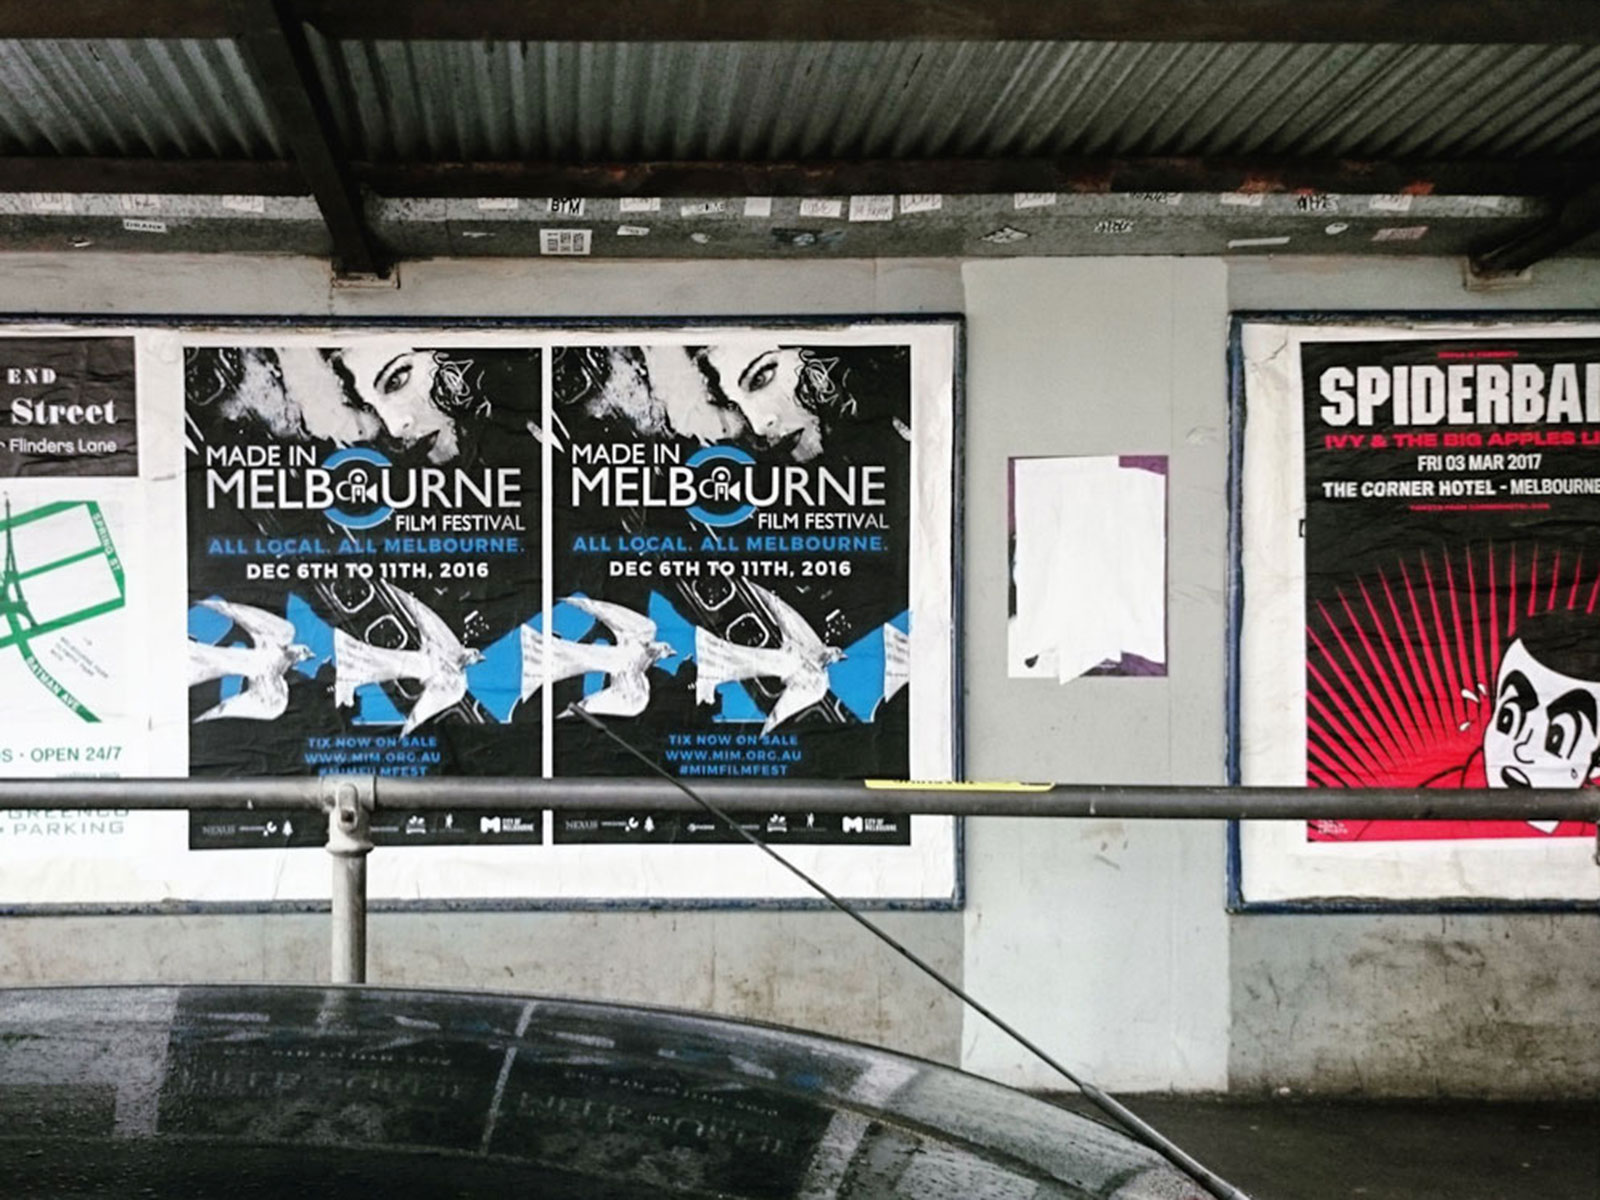 MIMFF poster illustration at Richmond Station, next to the Spiderbait poster.